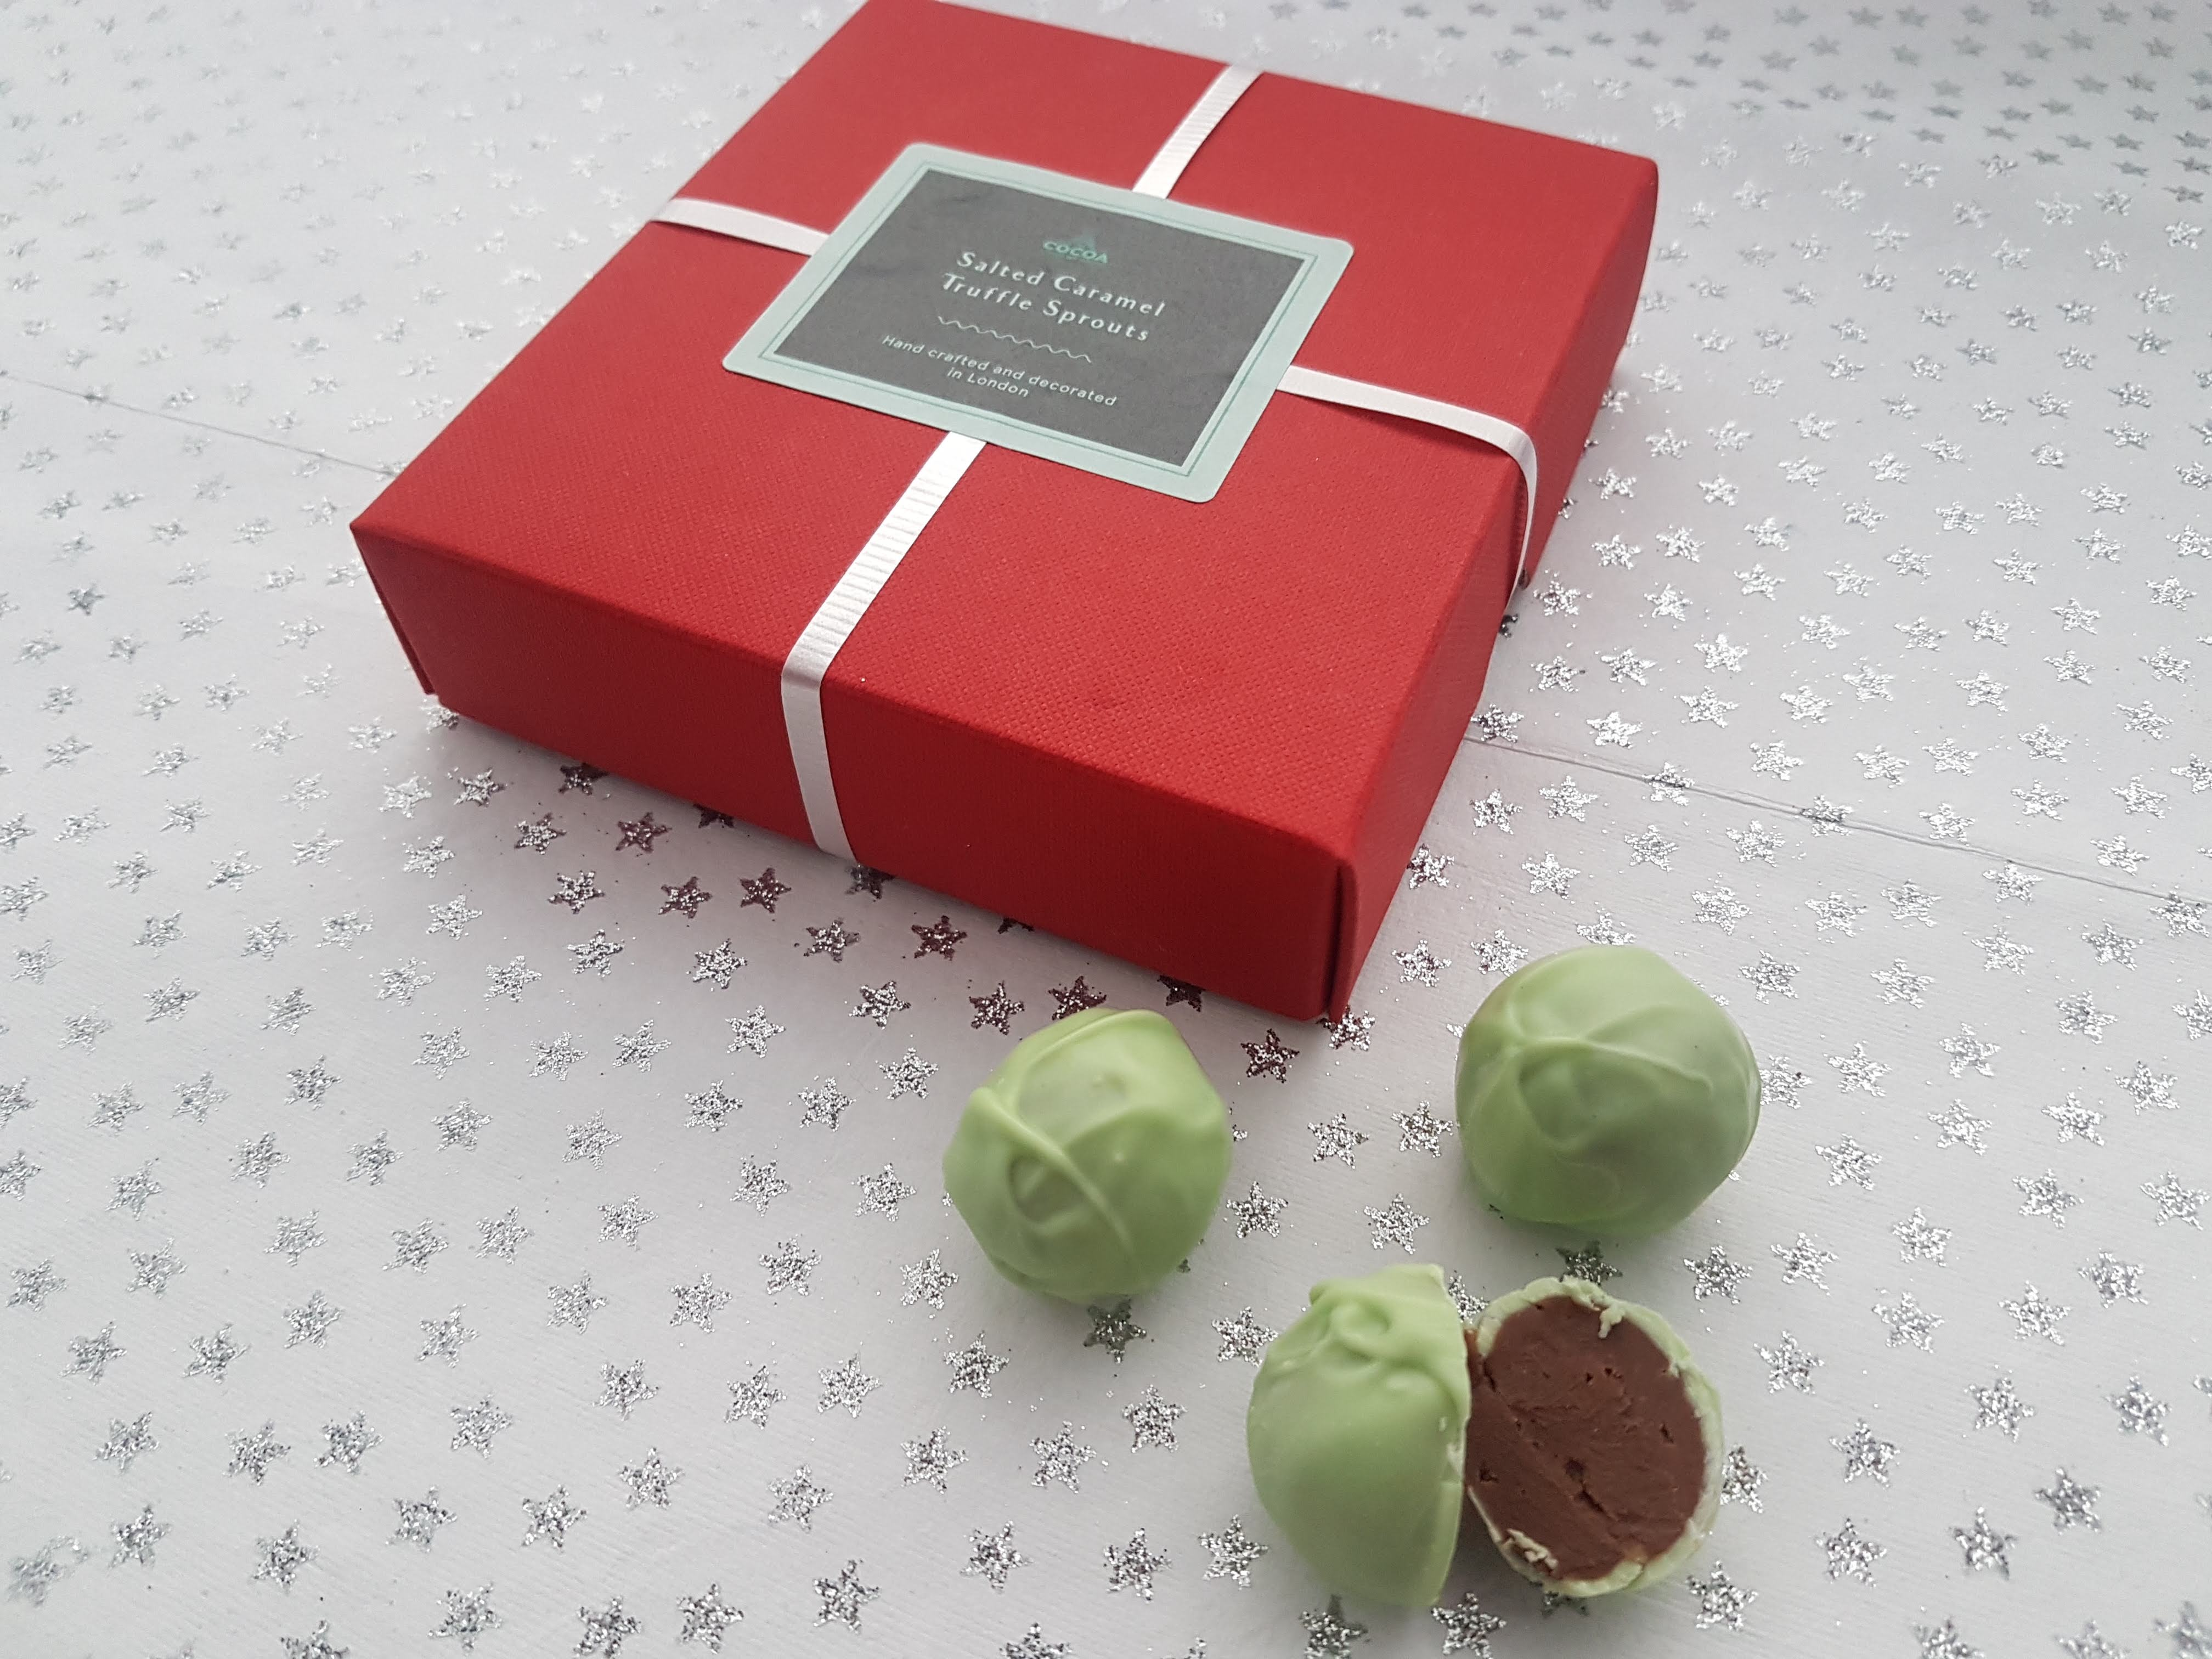 The Cocoa Den Salted Caramel Truffle Sprouts